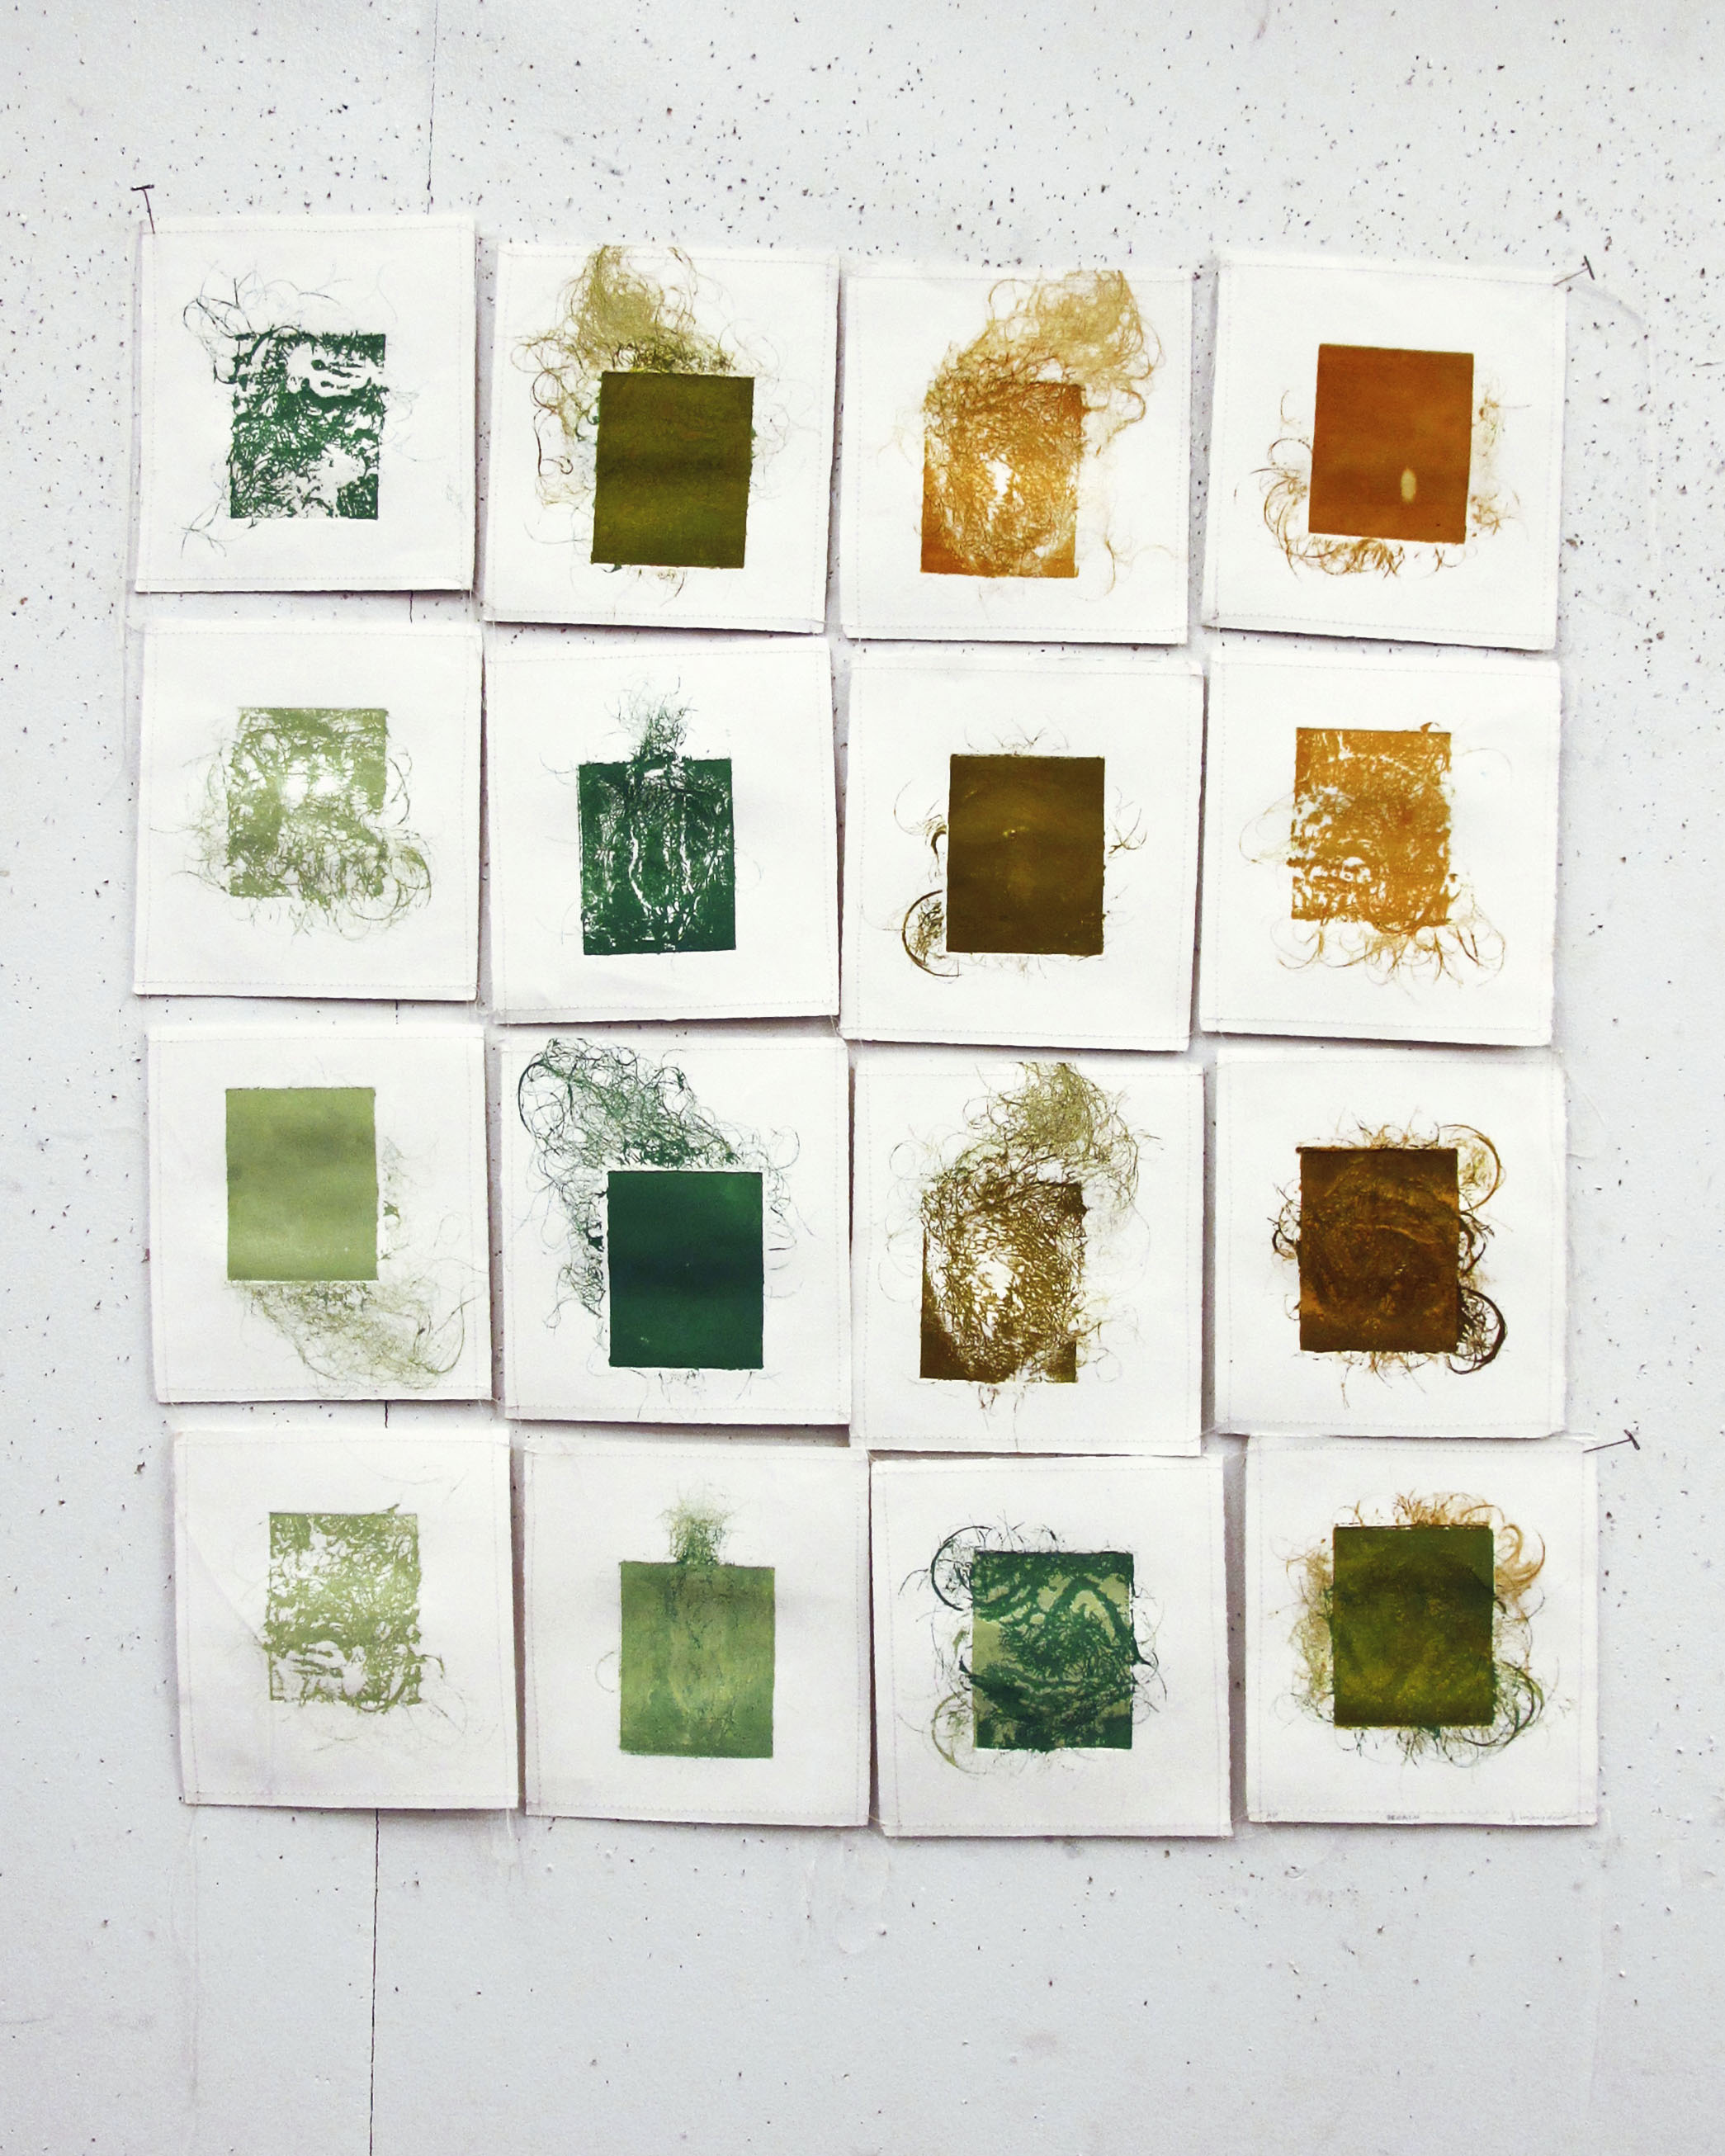 Part of an installation, experimental collagraphs with hand embroidery